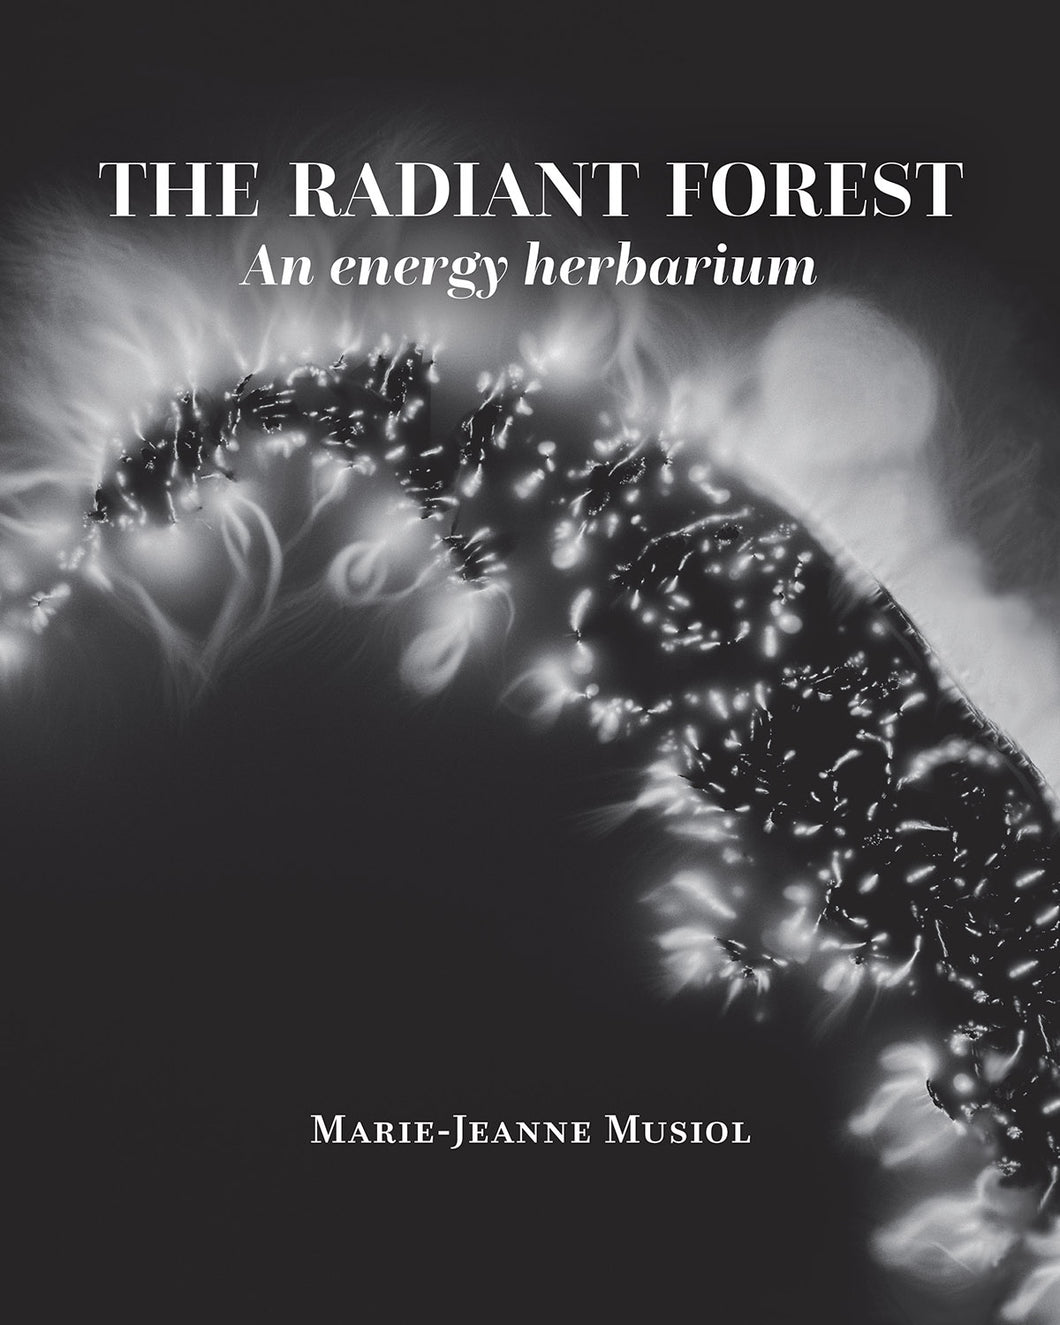 The Radiant Forest: An energy herbarium (French book and English companion)